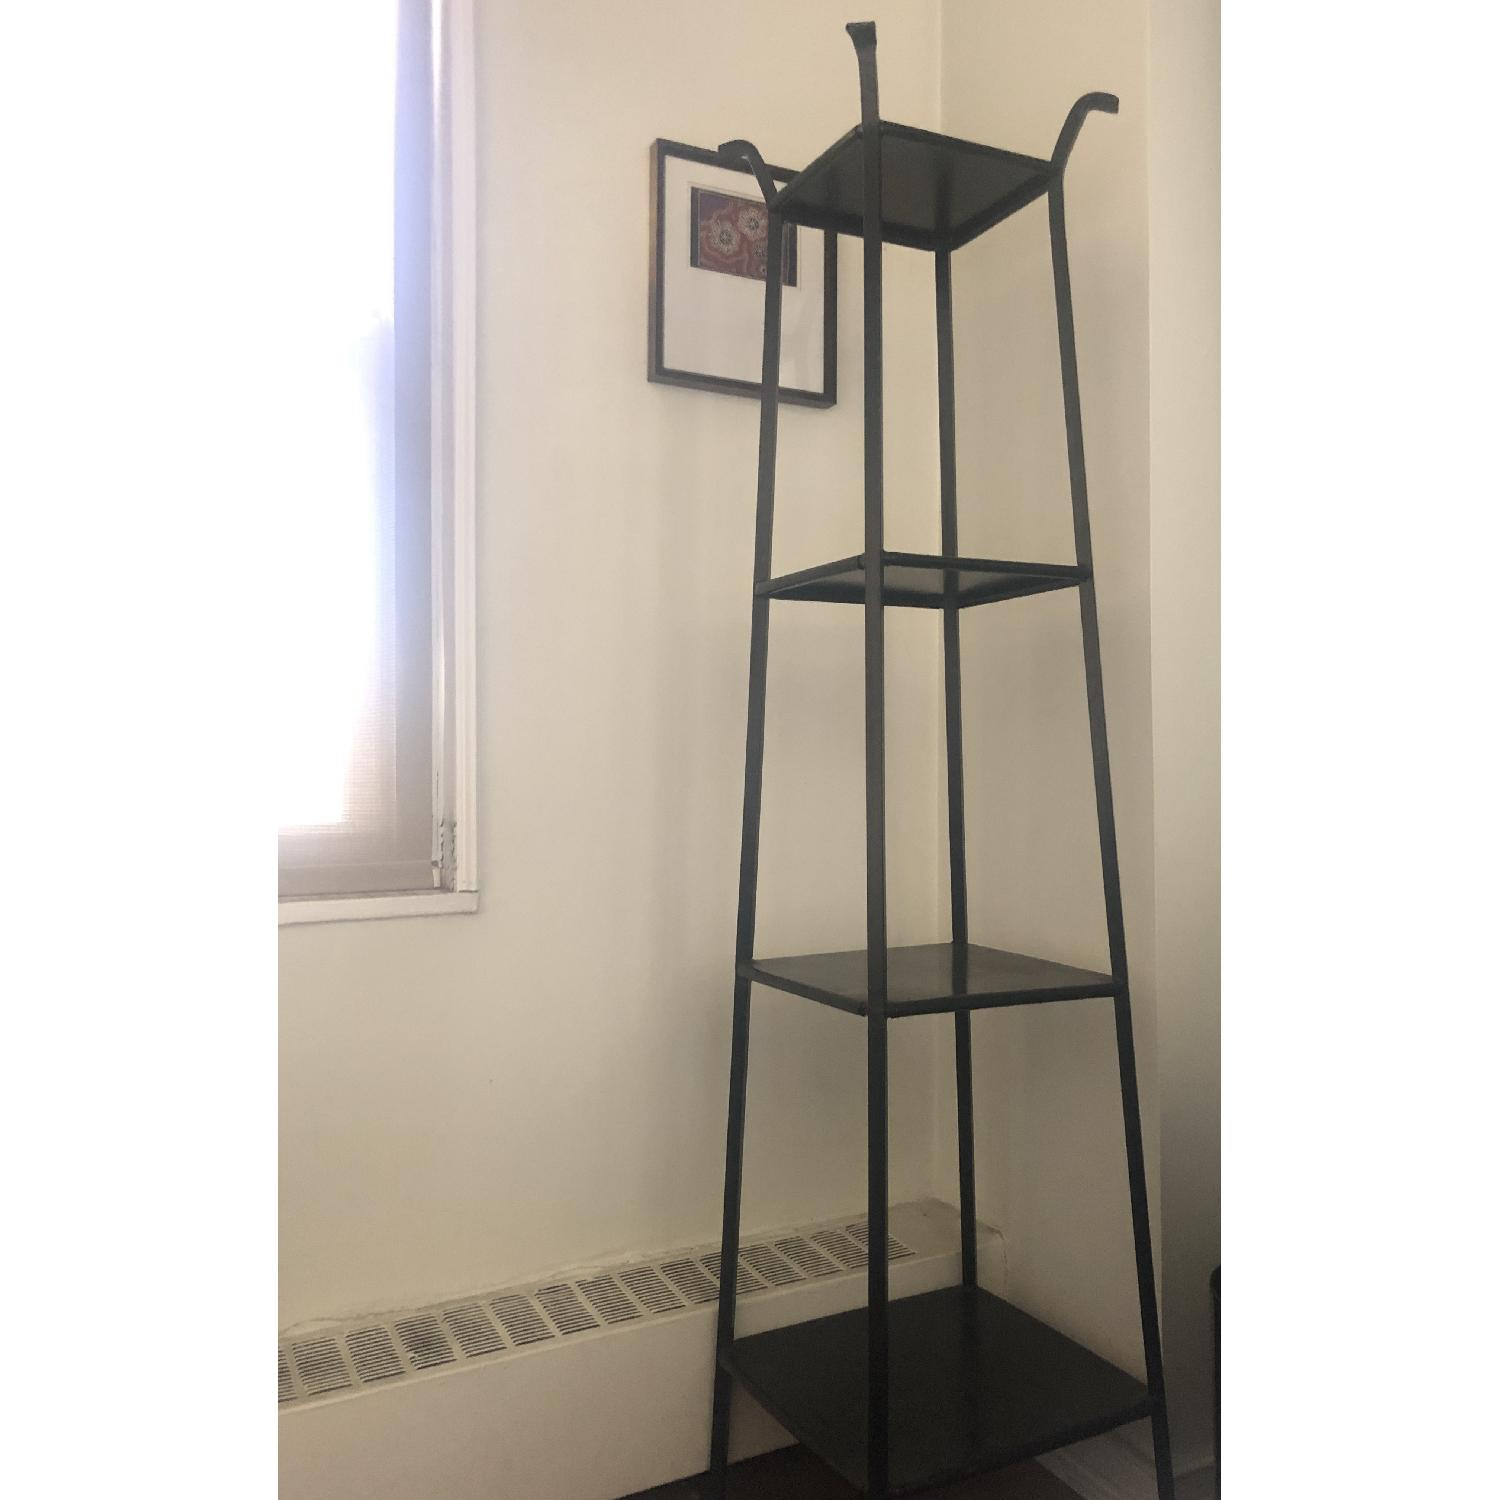 Crate & Barrel Blacksmith Metal Shelf/Etagere-1